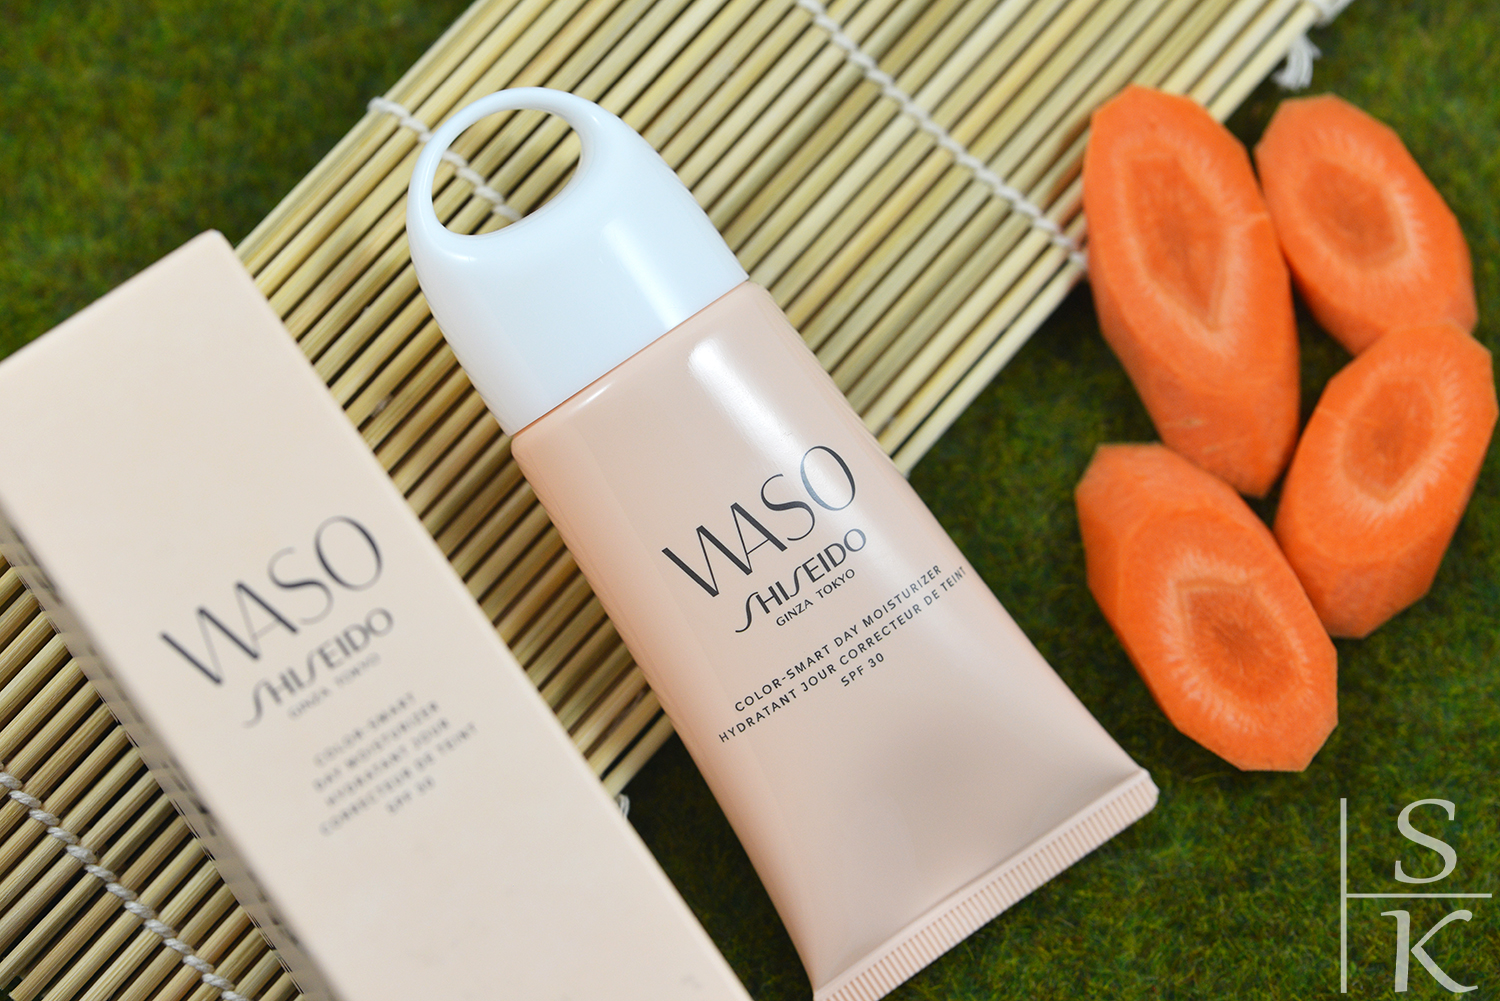 Shiseido WASO Color-smart Day Moisturizer SPF30 Review @Saskia-Katharina Most, Horizont-Blog